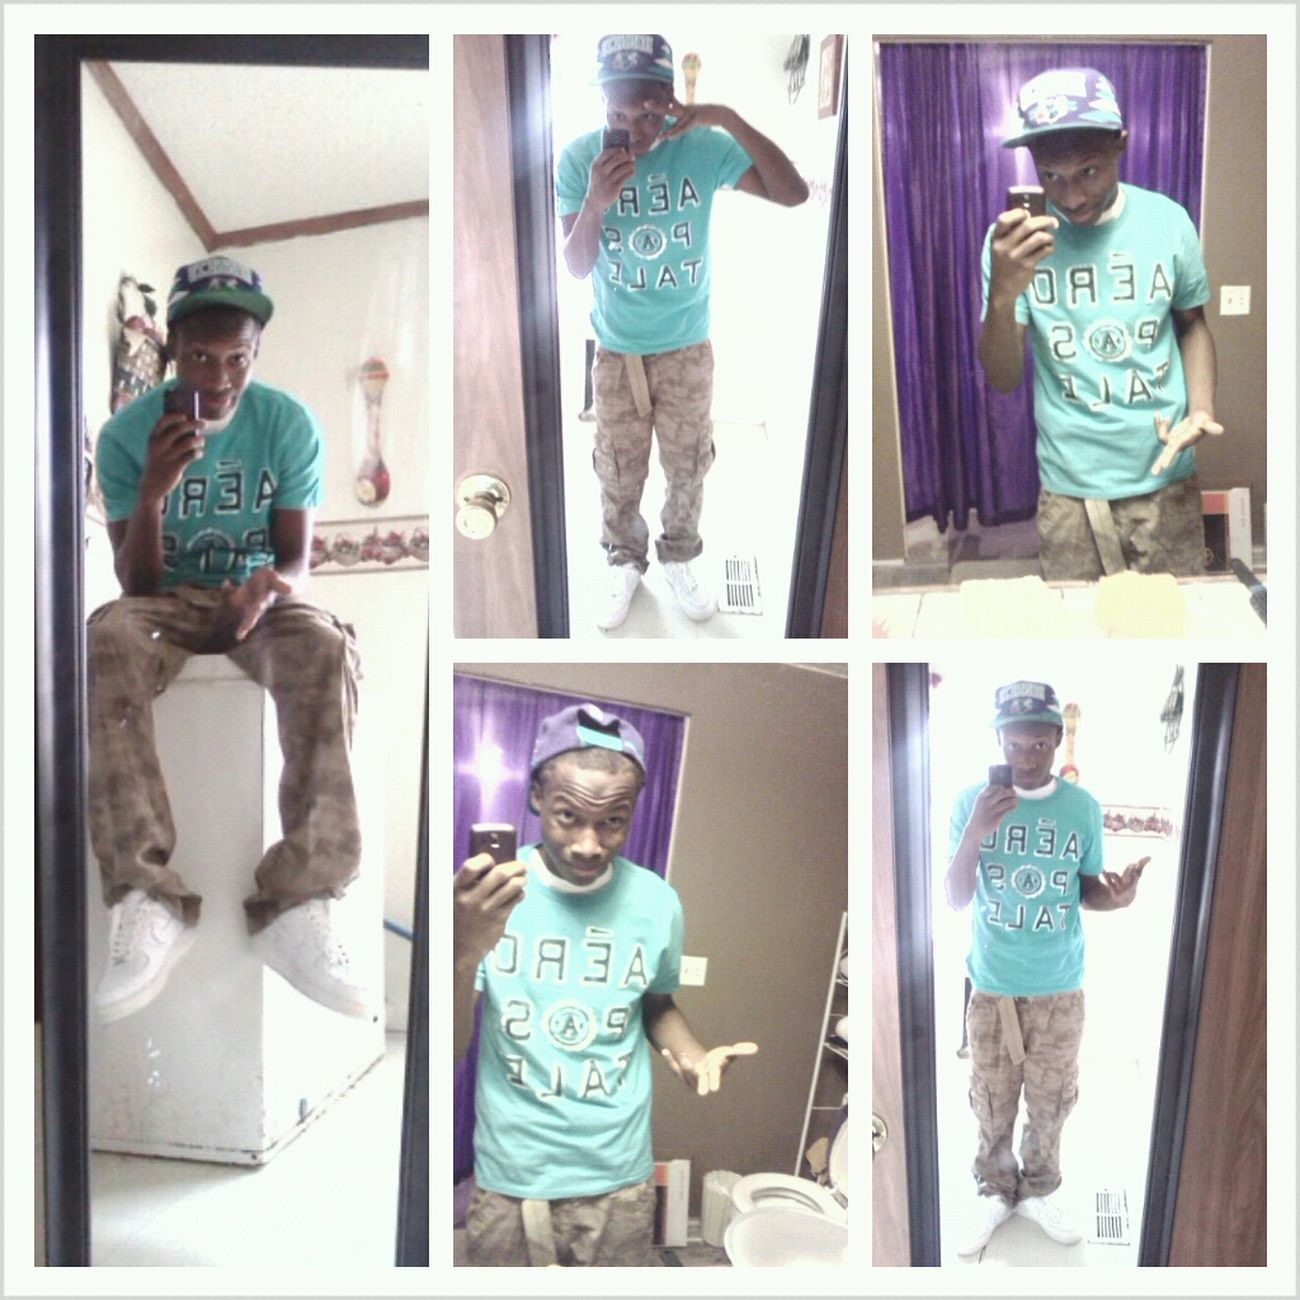 Swagg so dope tell yo friends t2 follow me